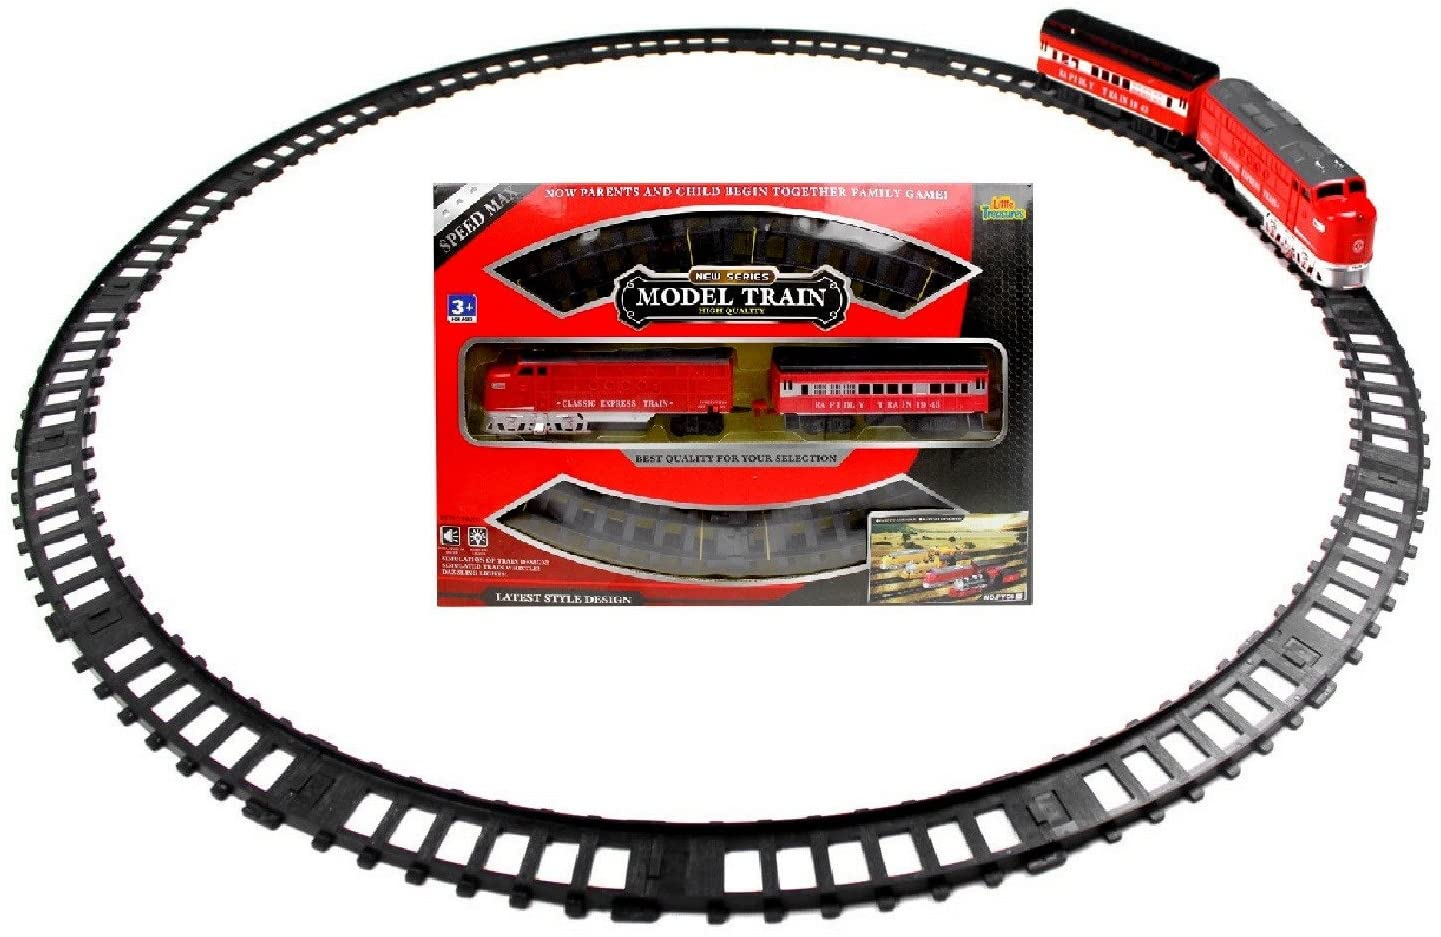 Little Treasures Classic Express Train Playset, Join The Speedy Journey